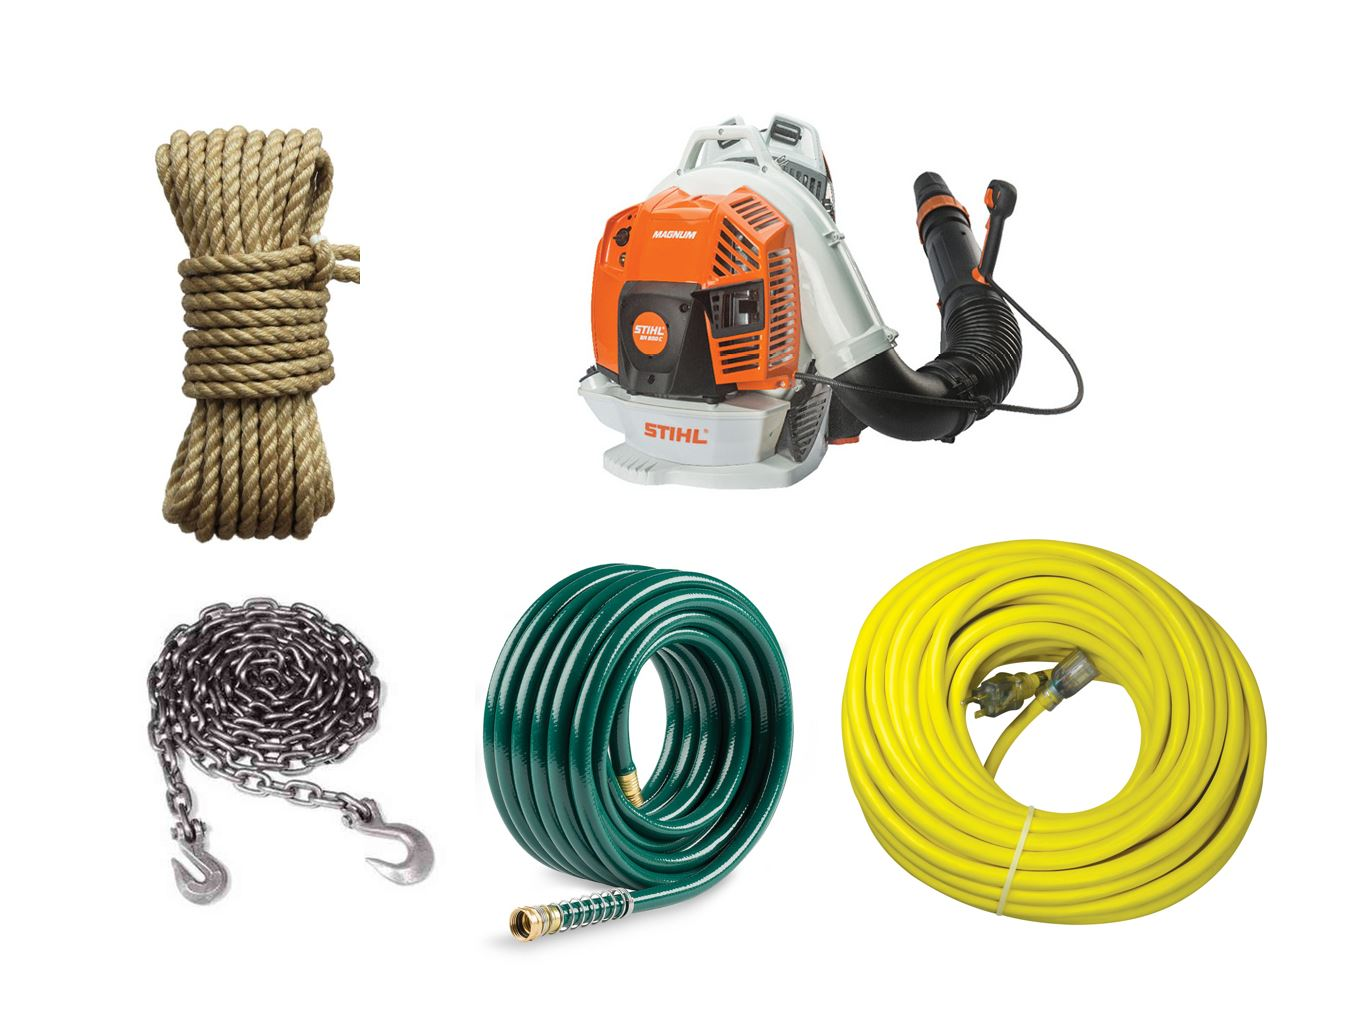 Carry Coils of rope, chain, garden hose, extension cords, air hose, even hook your leaf blower on using our 2 side mounted universal drop down hooks